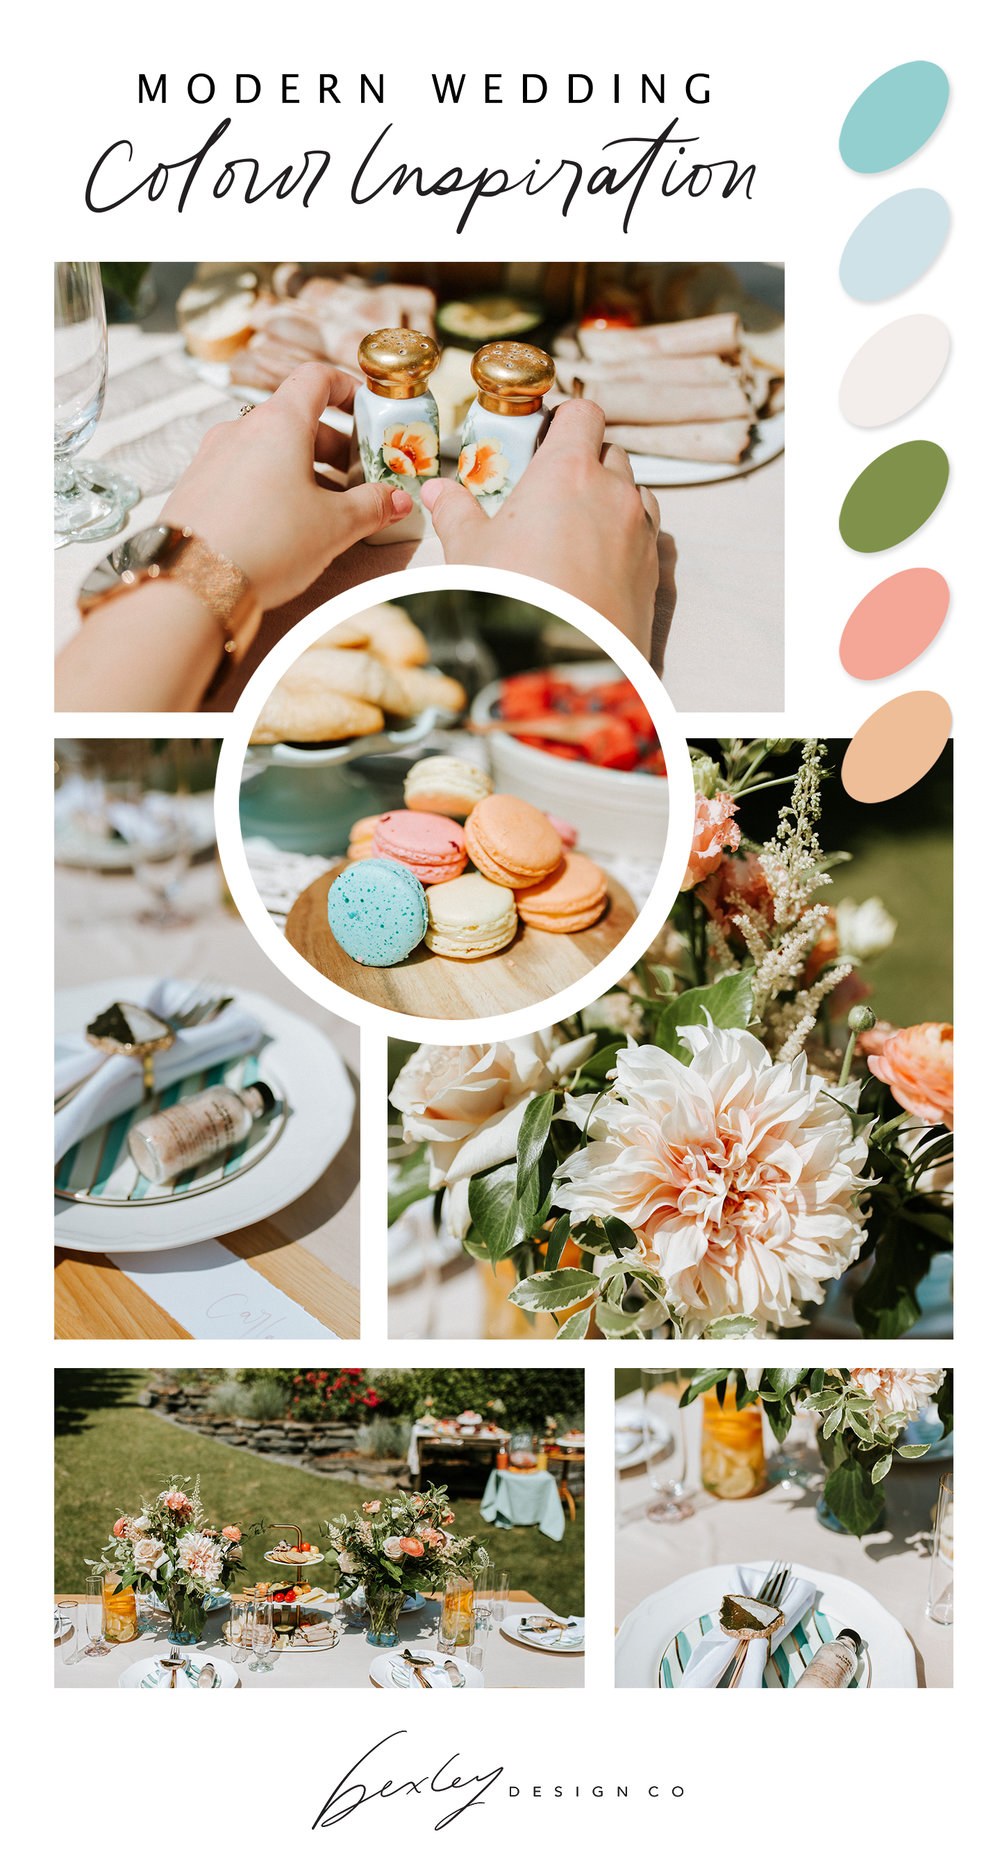 Modern Wedding Colour Inspiration // Bexley Design Co